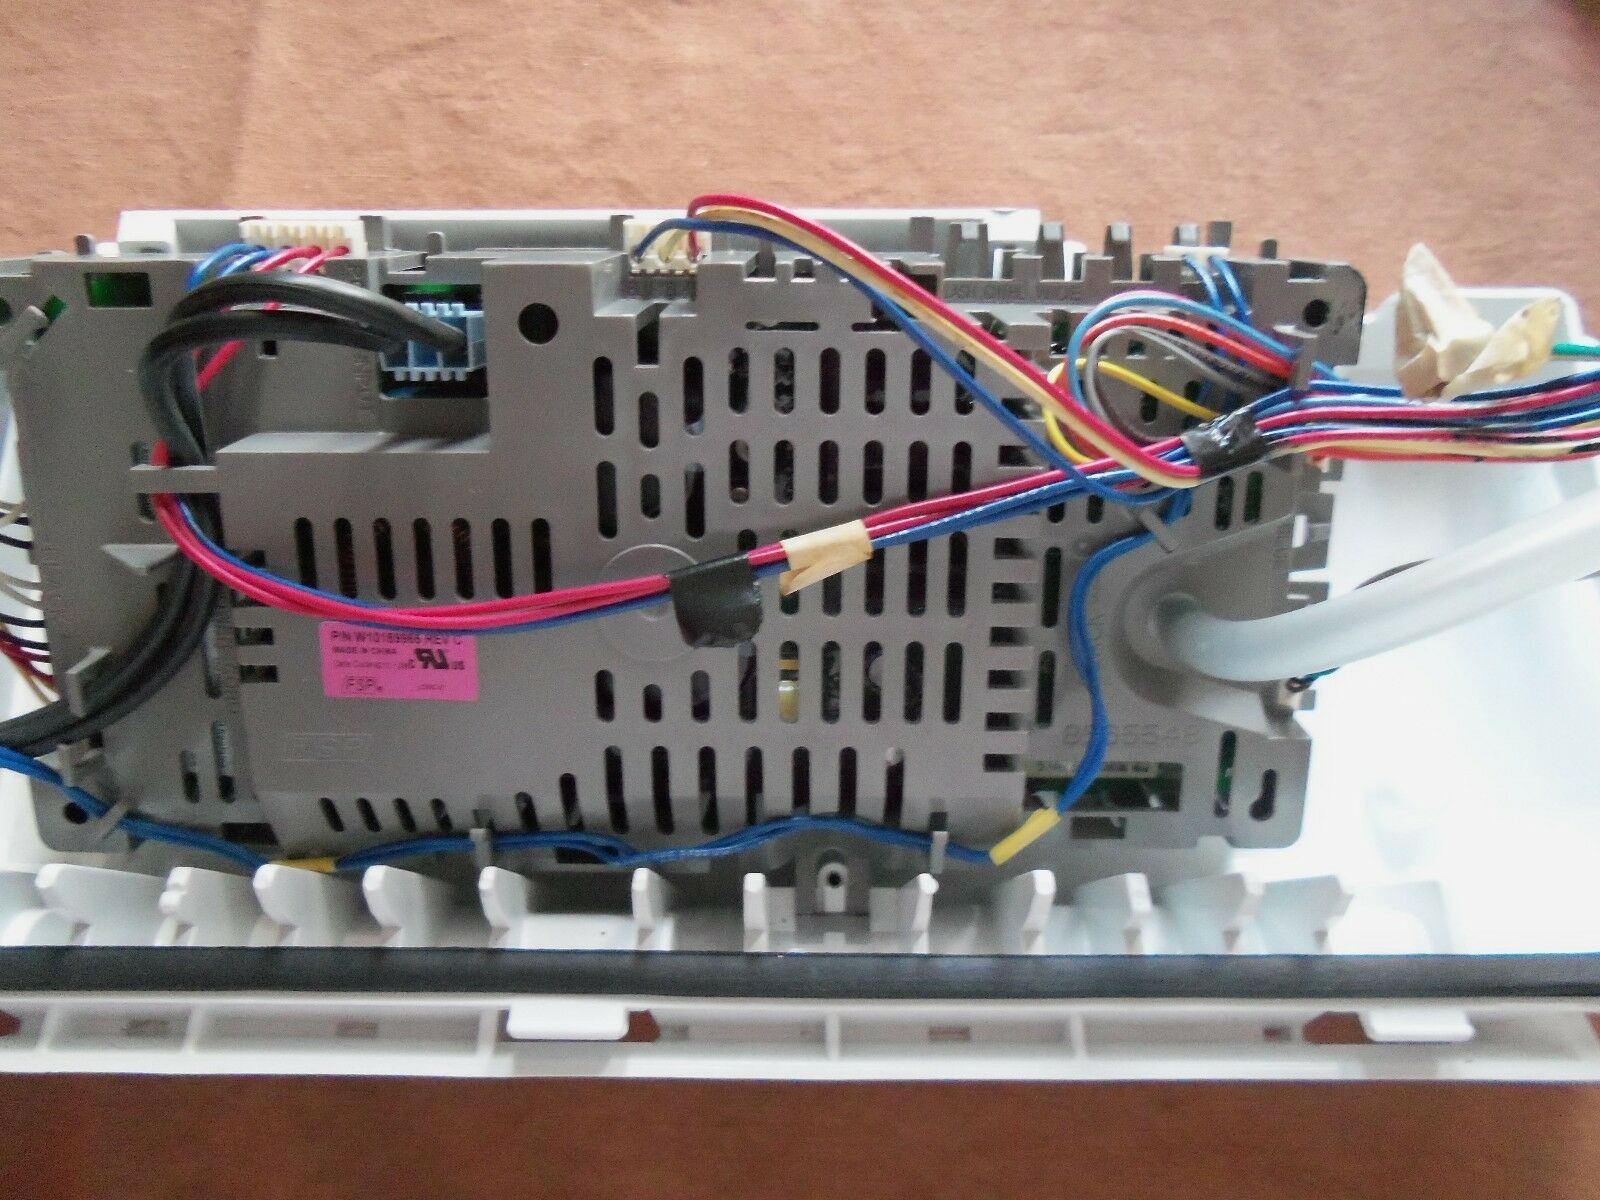 Kenmore Whirlpool Washer Electronic Control Board W10189966 with wiring